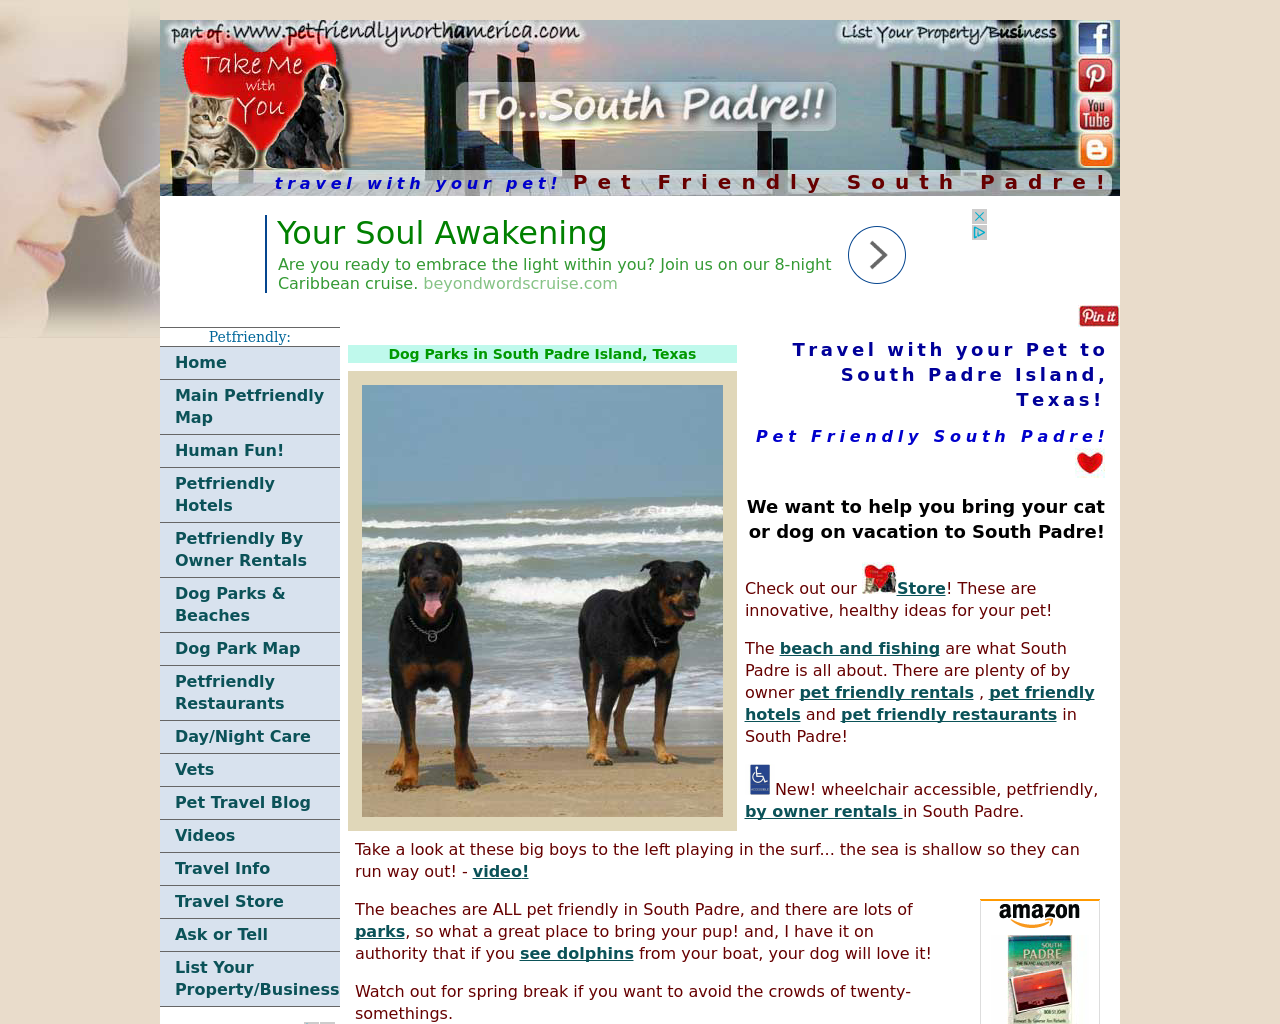 Pet-Friendly-South-Padre-Island-Advertising-Reviews-Pricing